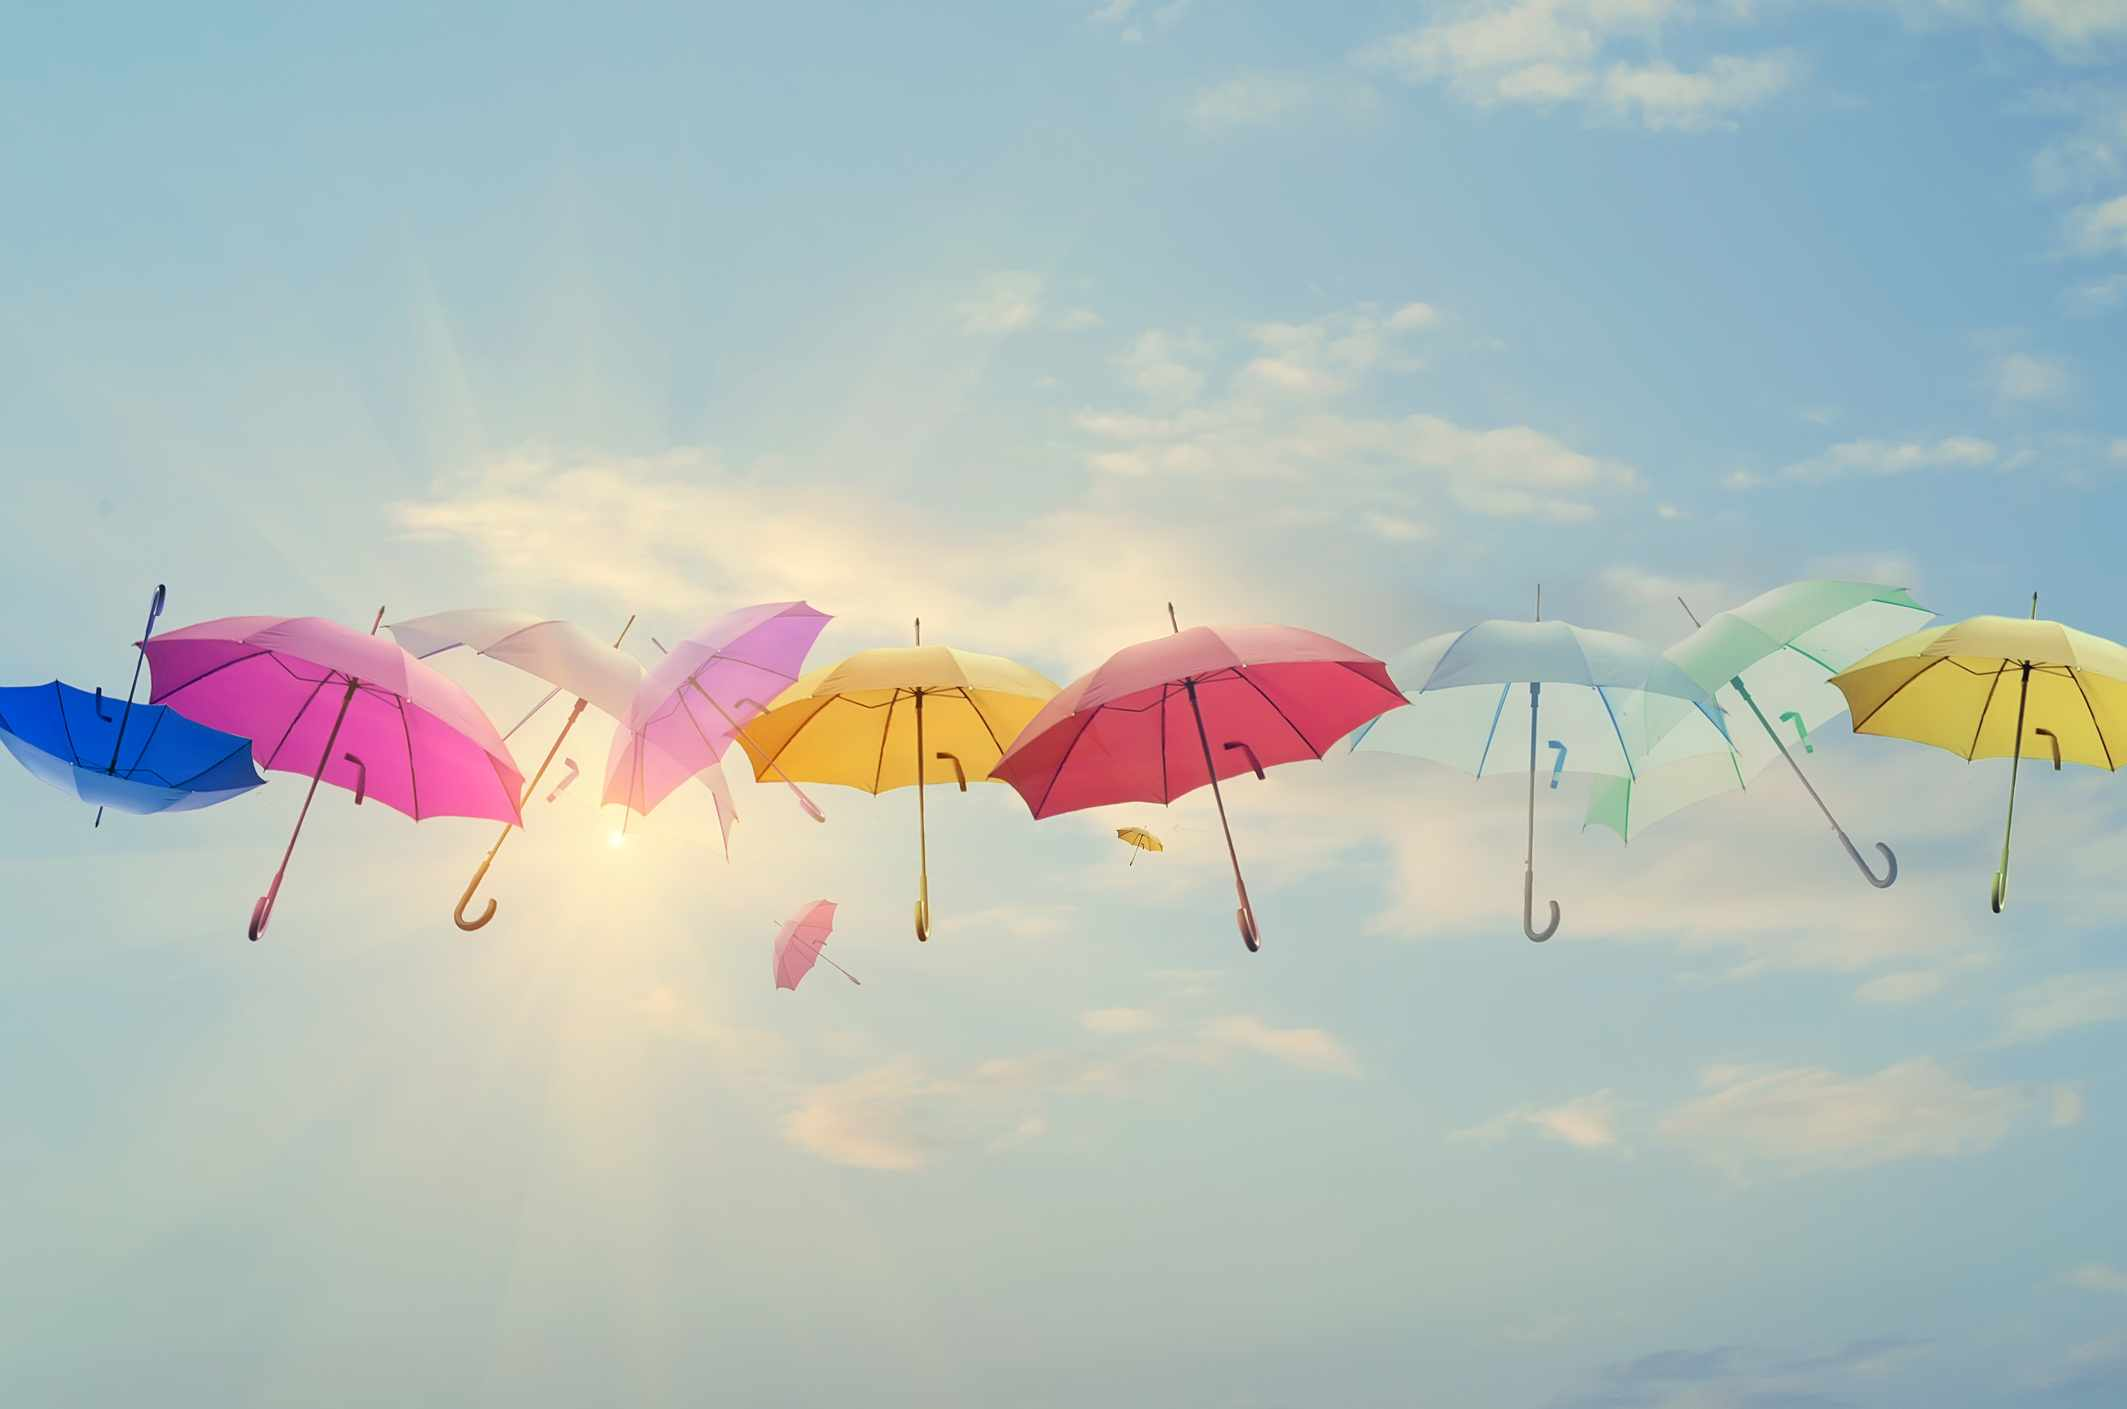 Conceptual photo of different color umbrellas lined-up across the sky. Sun is behind them shining, and this concept can represent team work, individuality, success of different people working together etc.